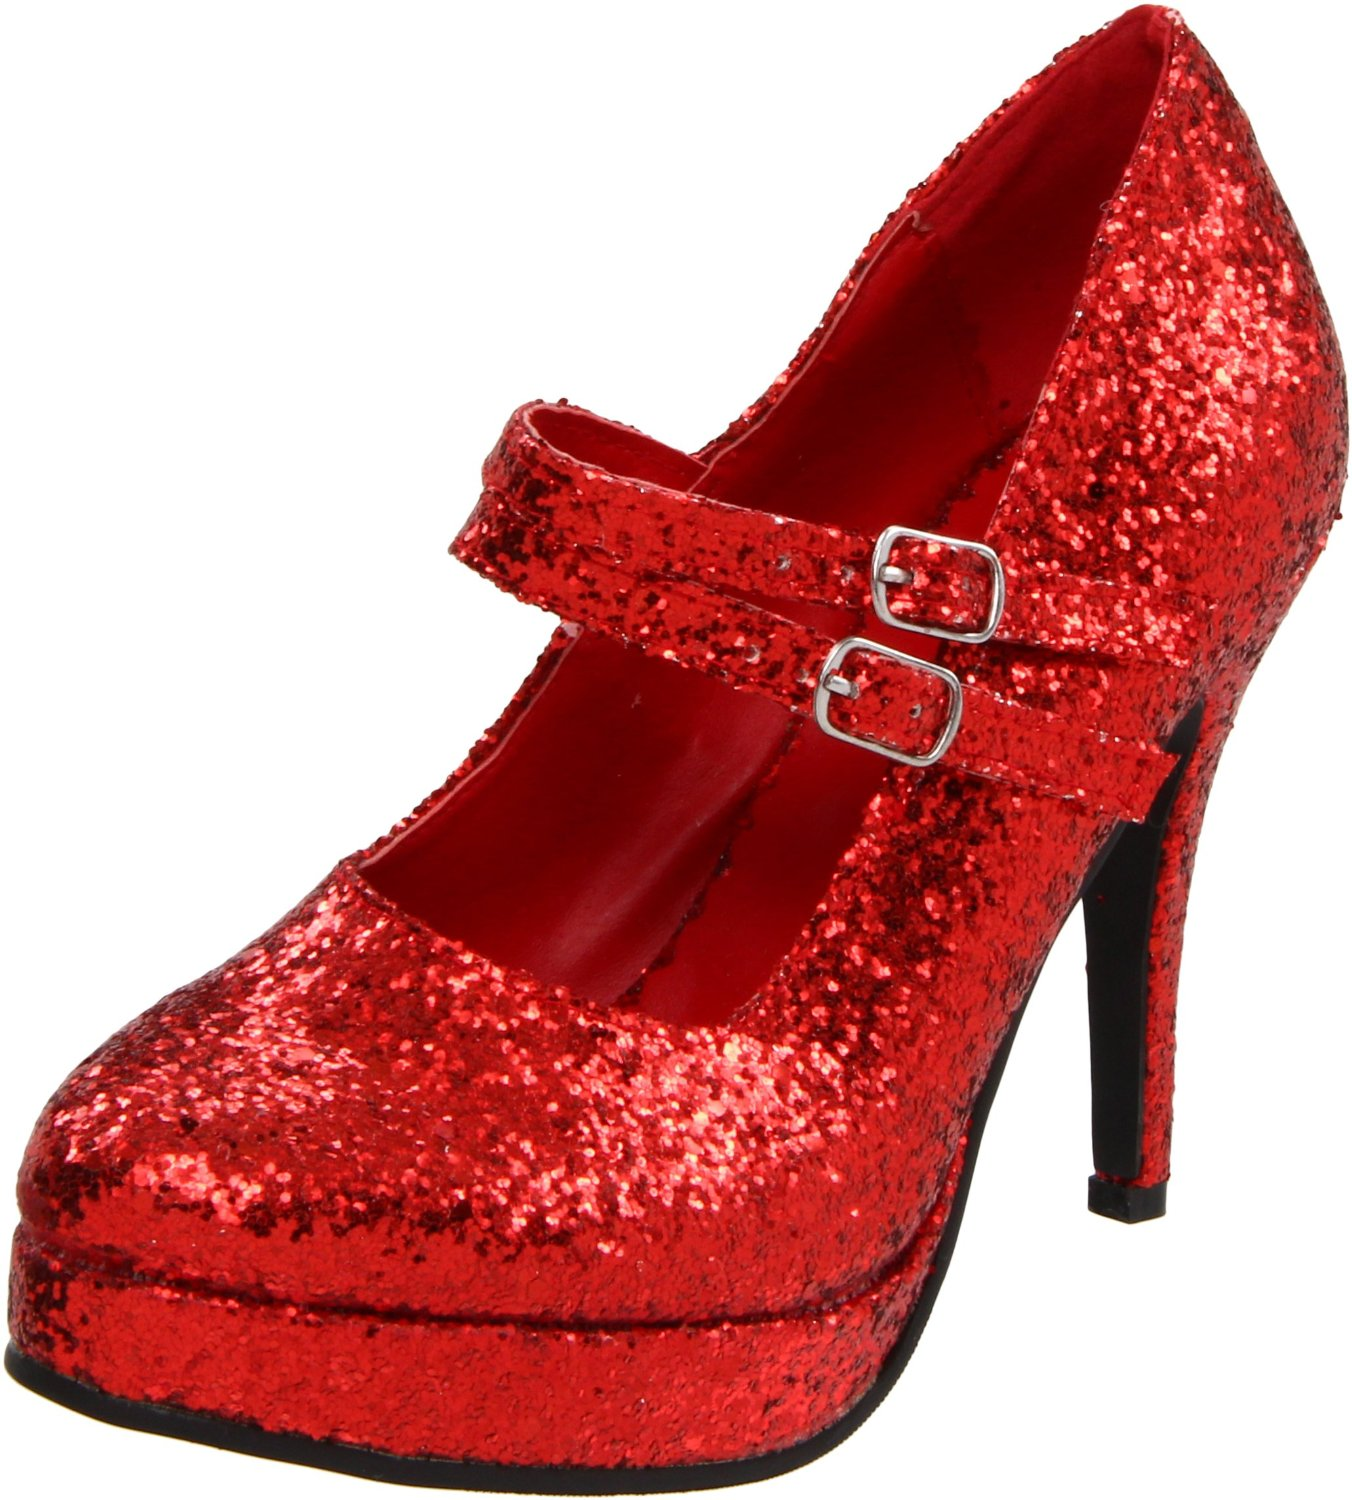 Fashion trends: Red glitter shoes - High heel prom shoes